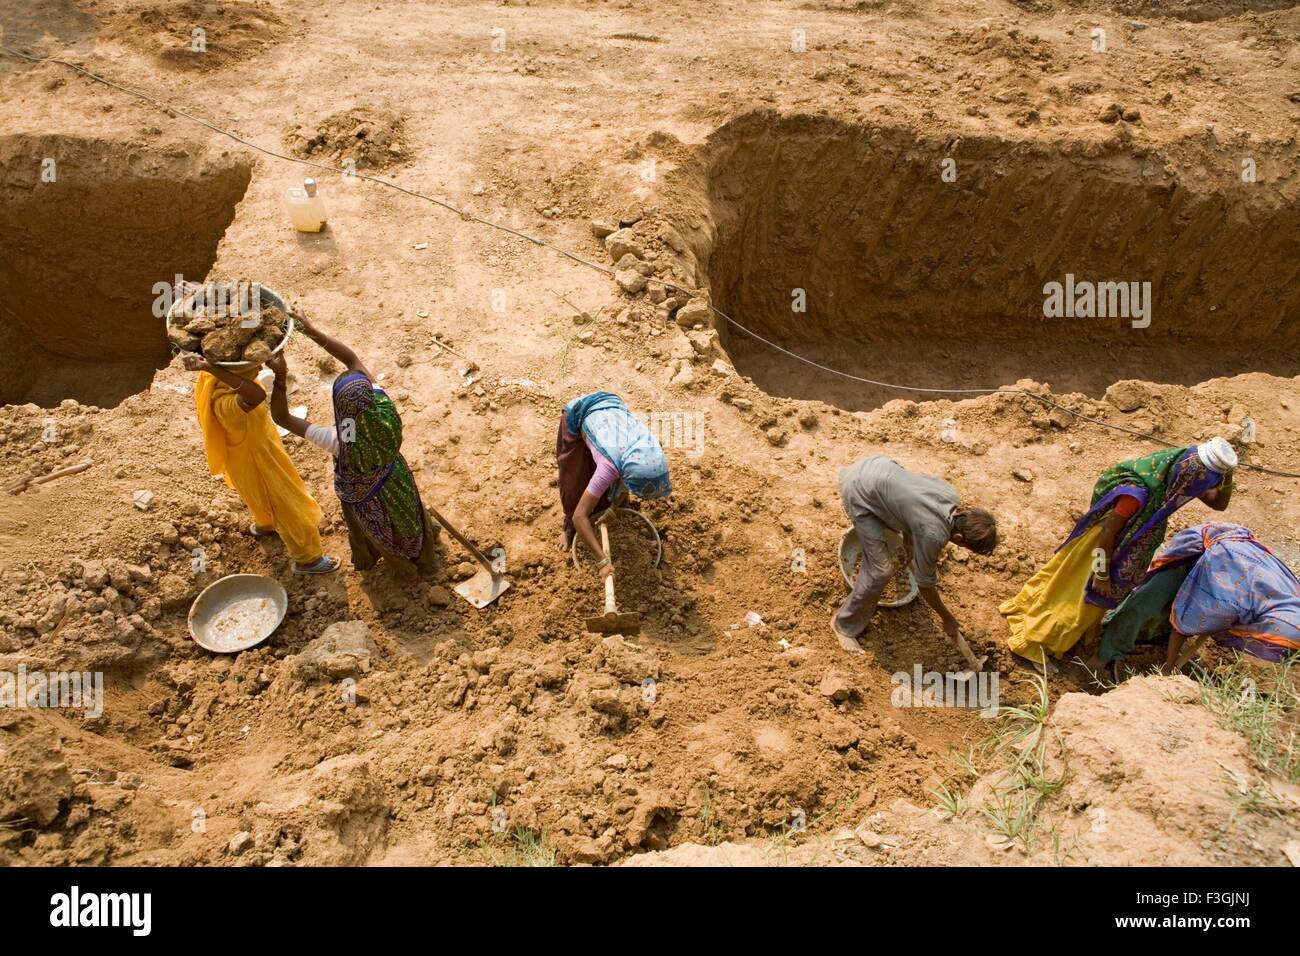 Workers at a construction site engaged in manual unskilled work ; Ahmedabad ; Gujarat ; India - Stock Image